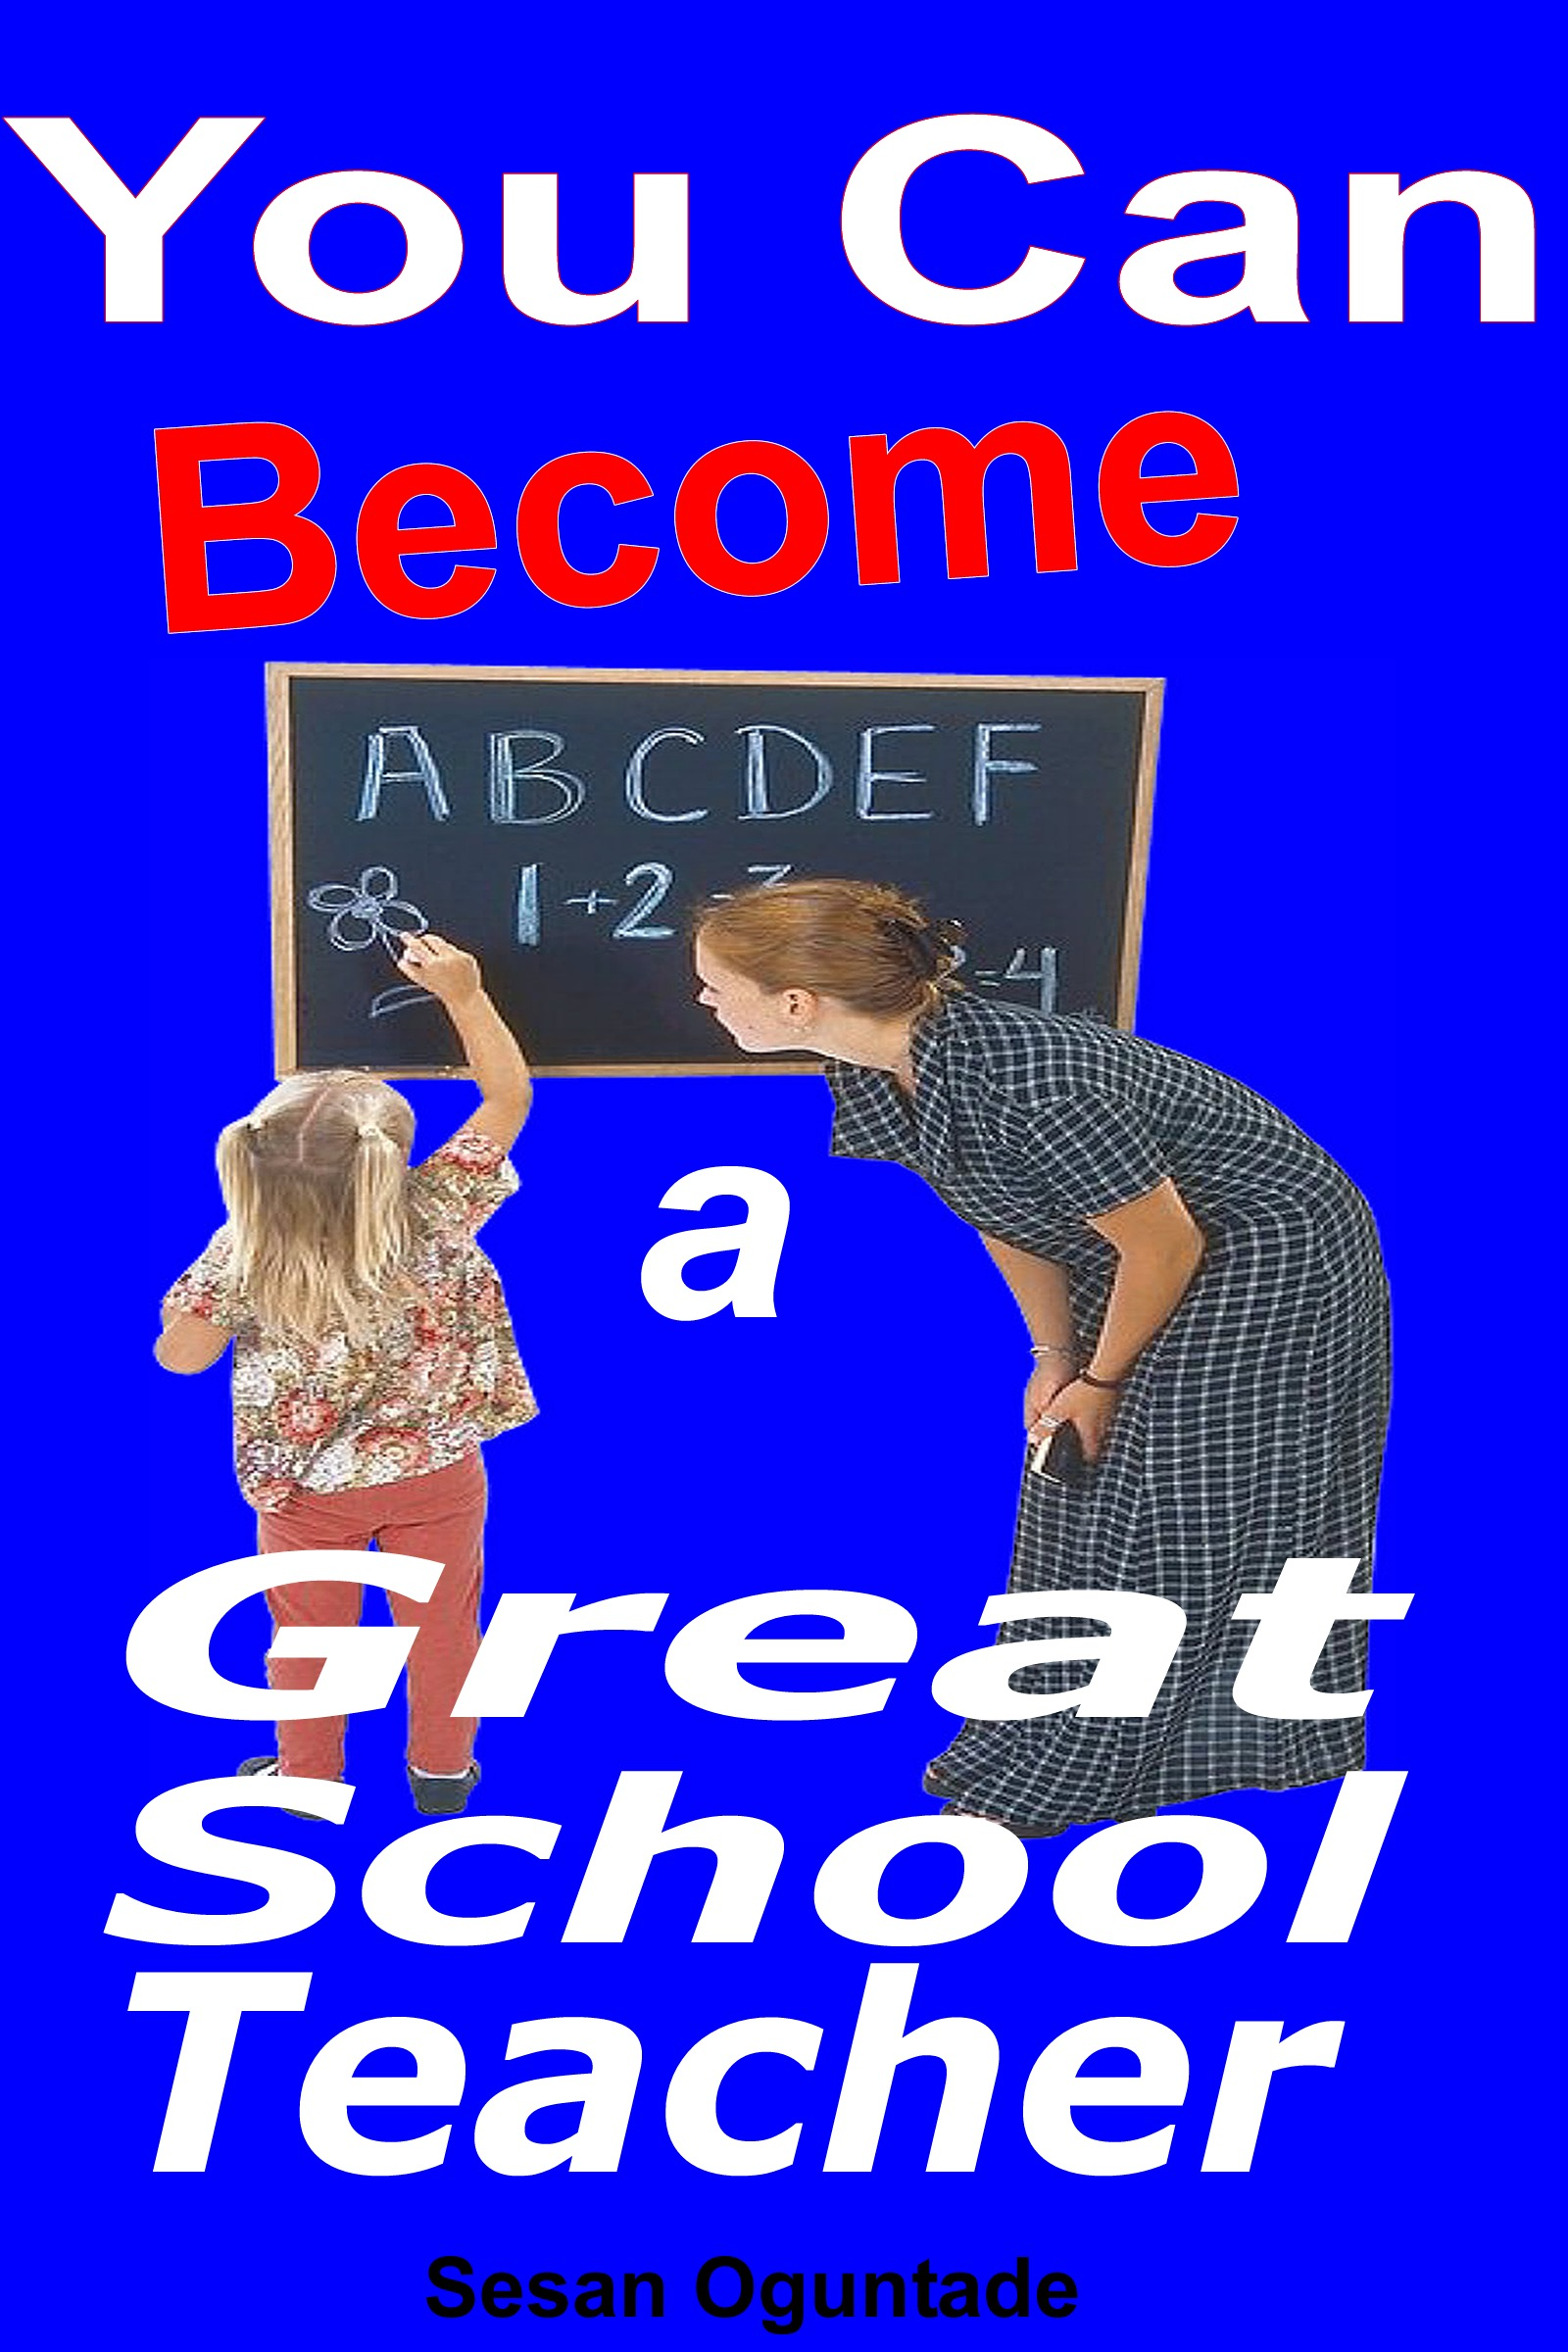 You Can Become a Great School Teacher